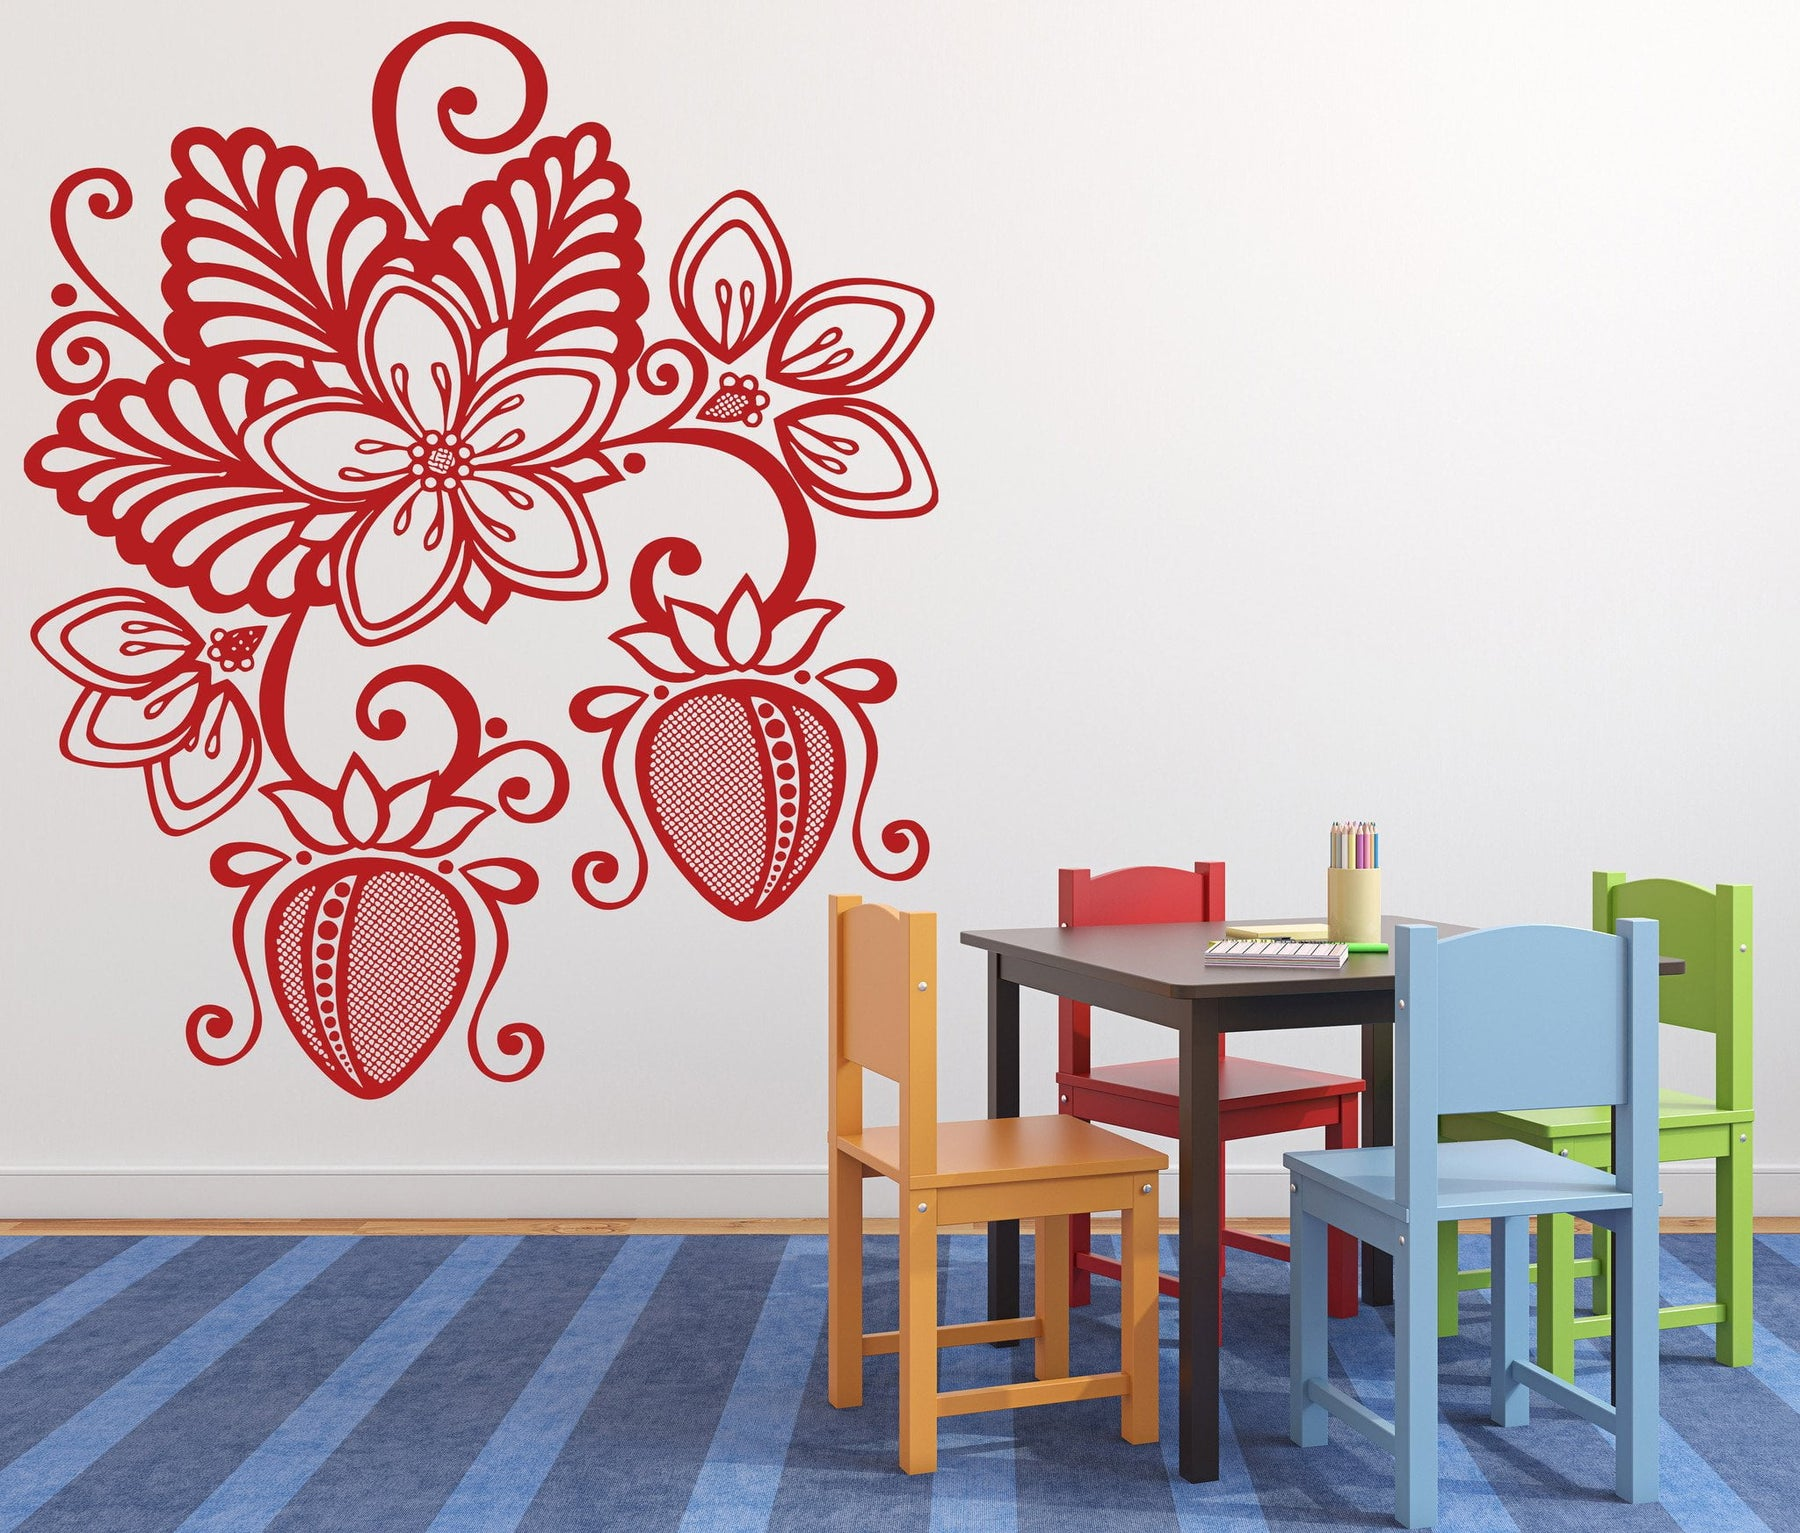 Vinyl Decal beautiful floral pattern strawberries Wall Sticker Unique Gift (n204)